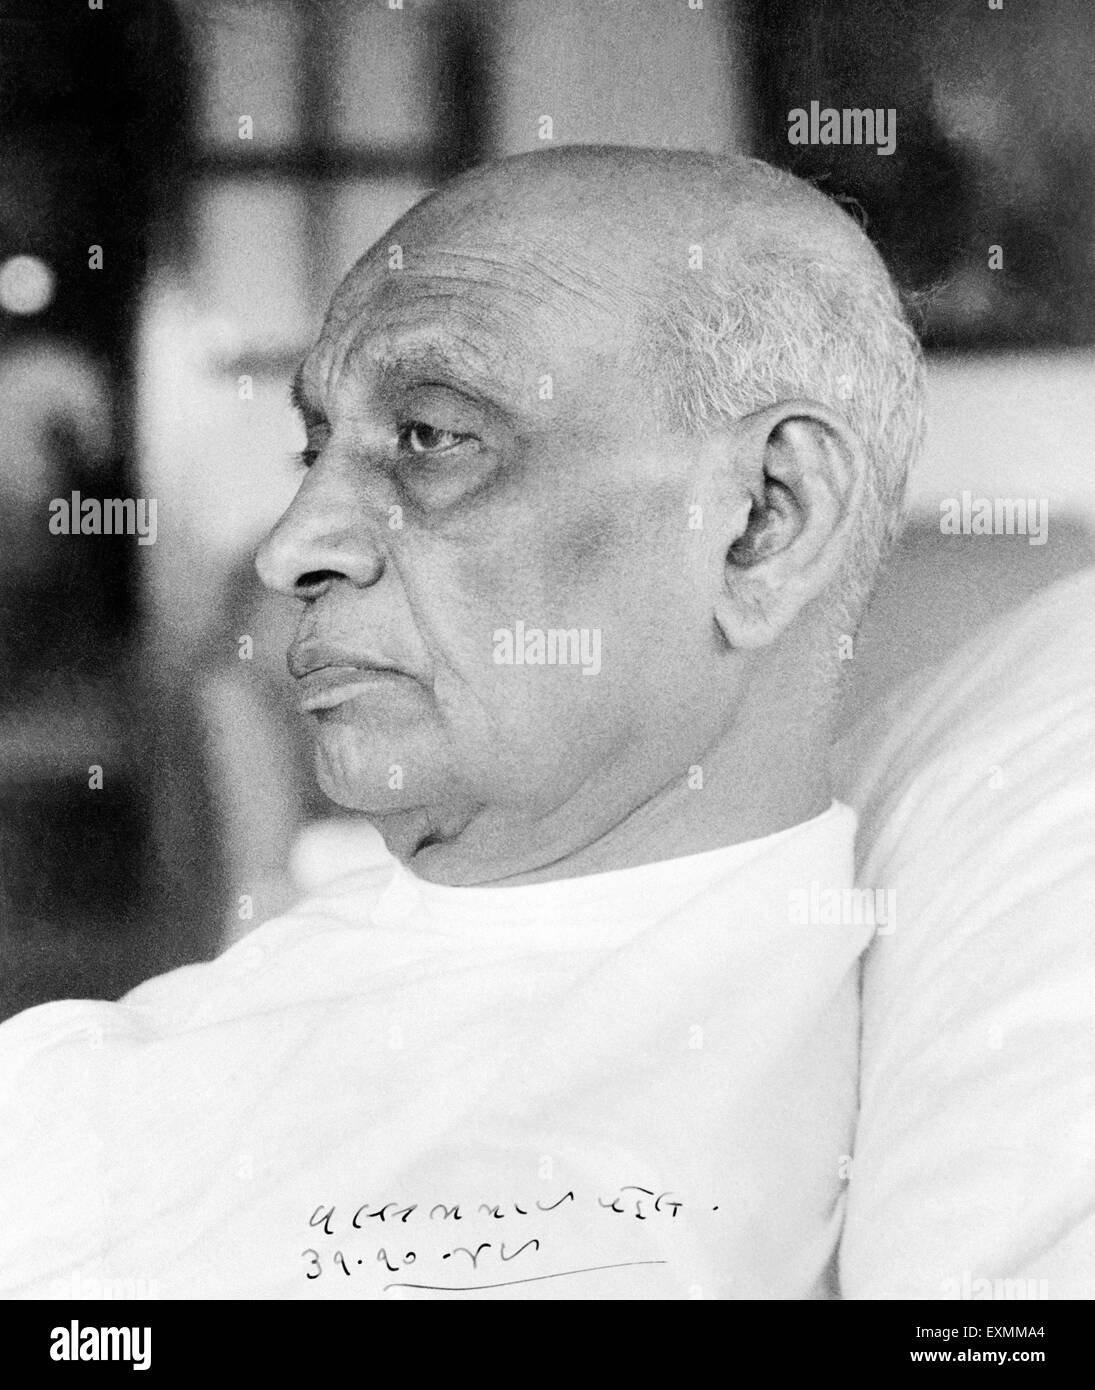 Sardar Vallabhbhai Patel signed portrait 1949 - Stock Image